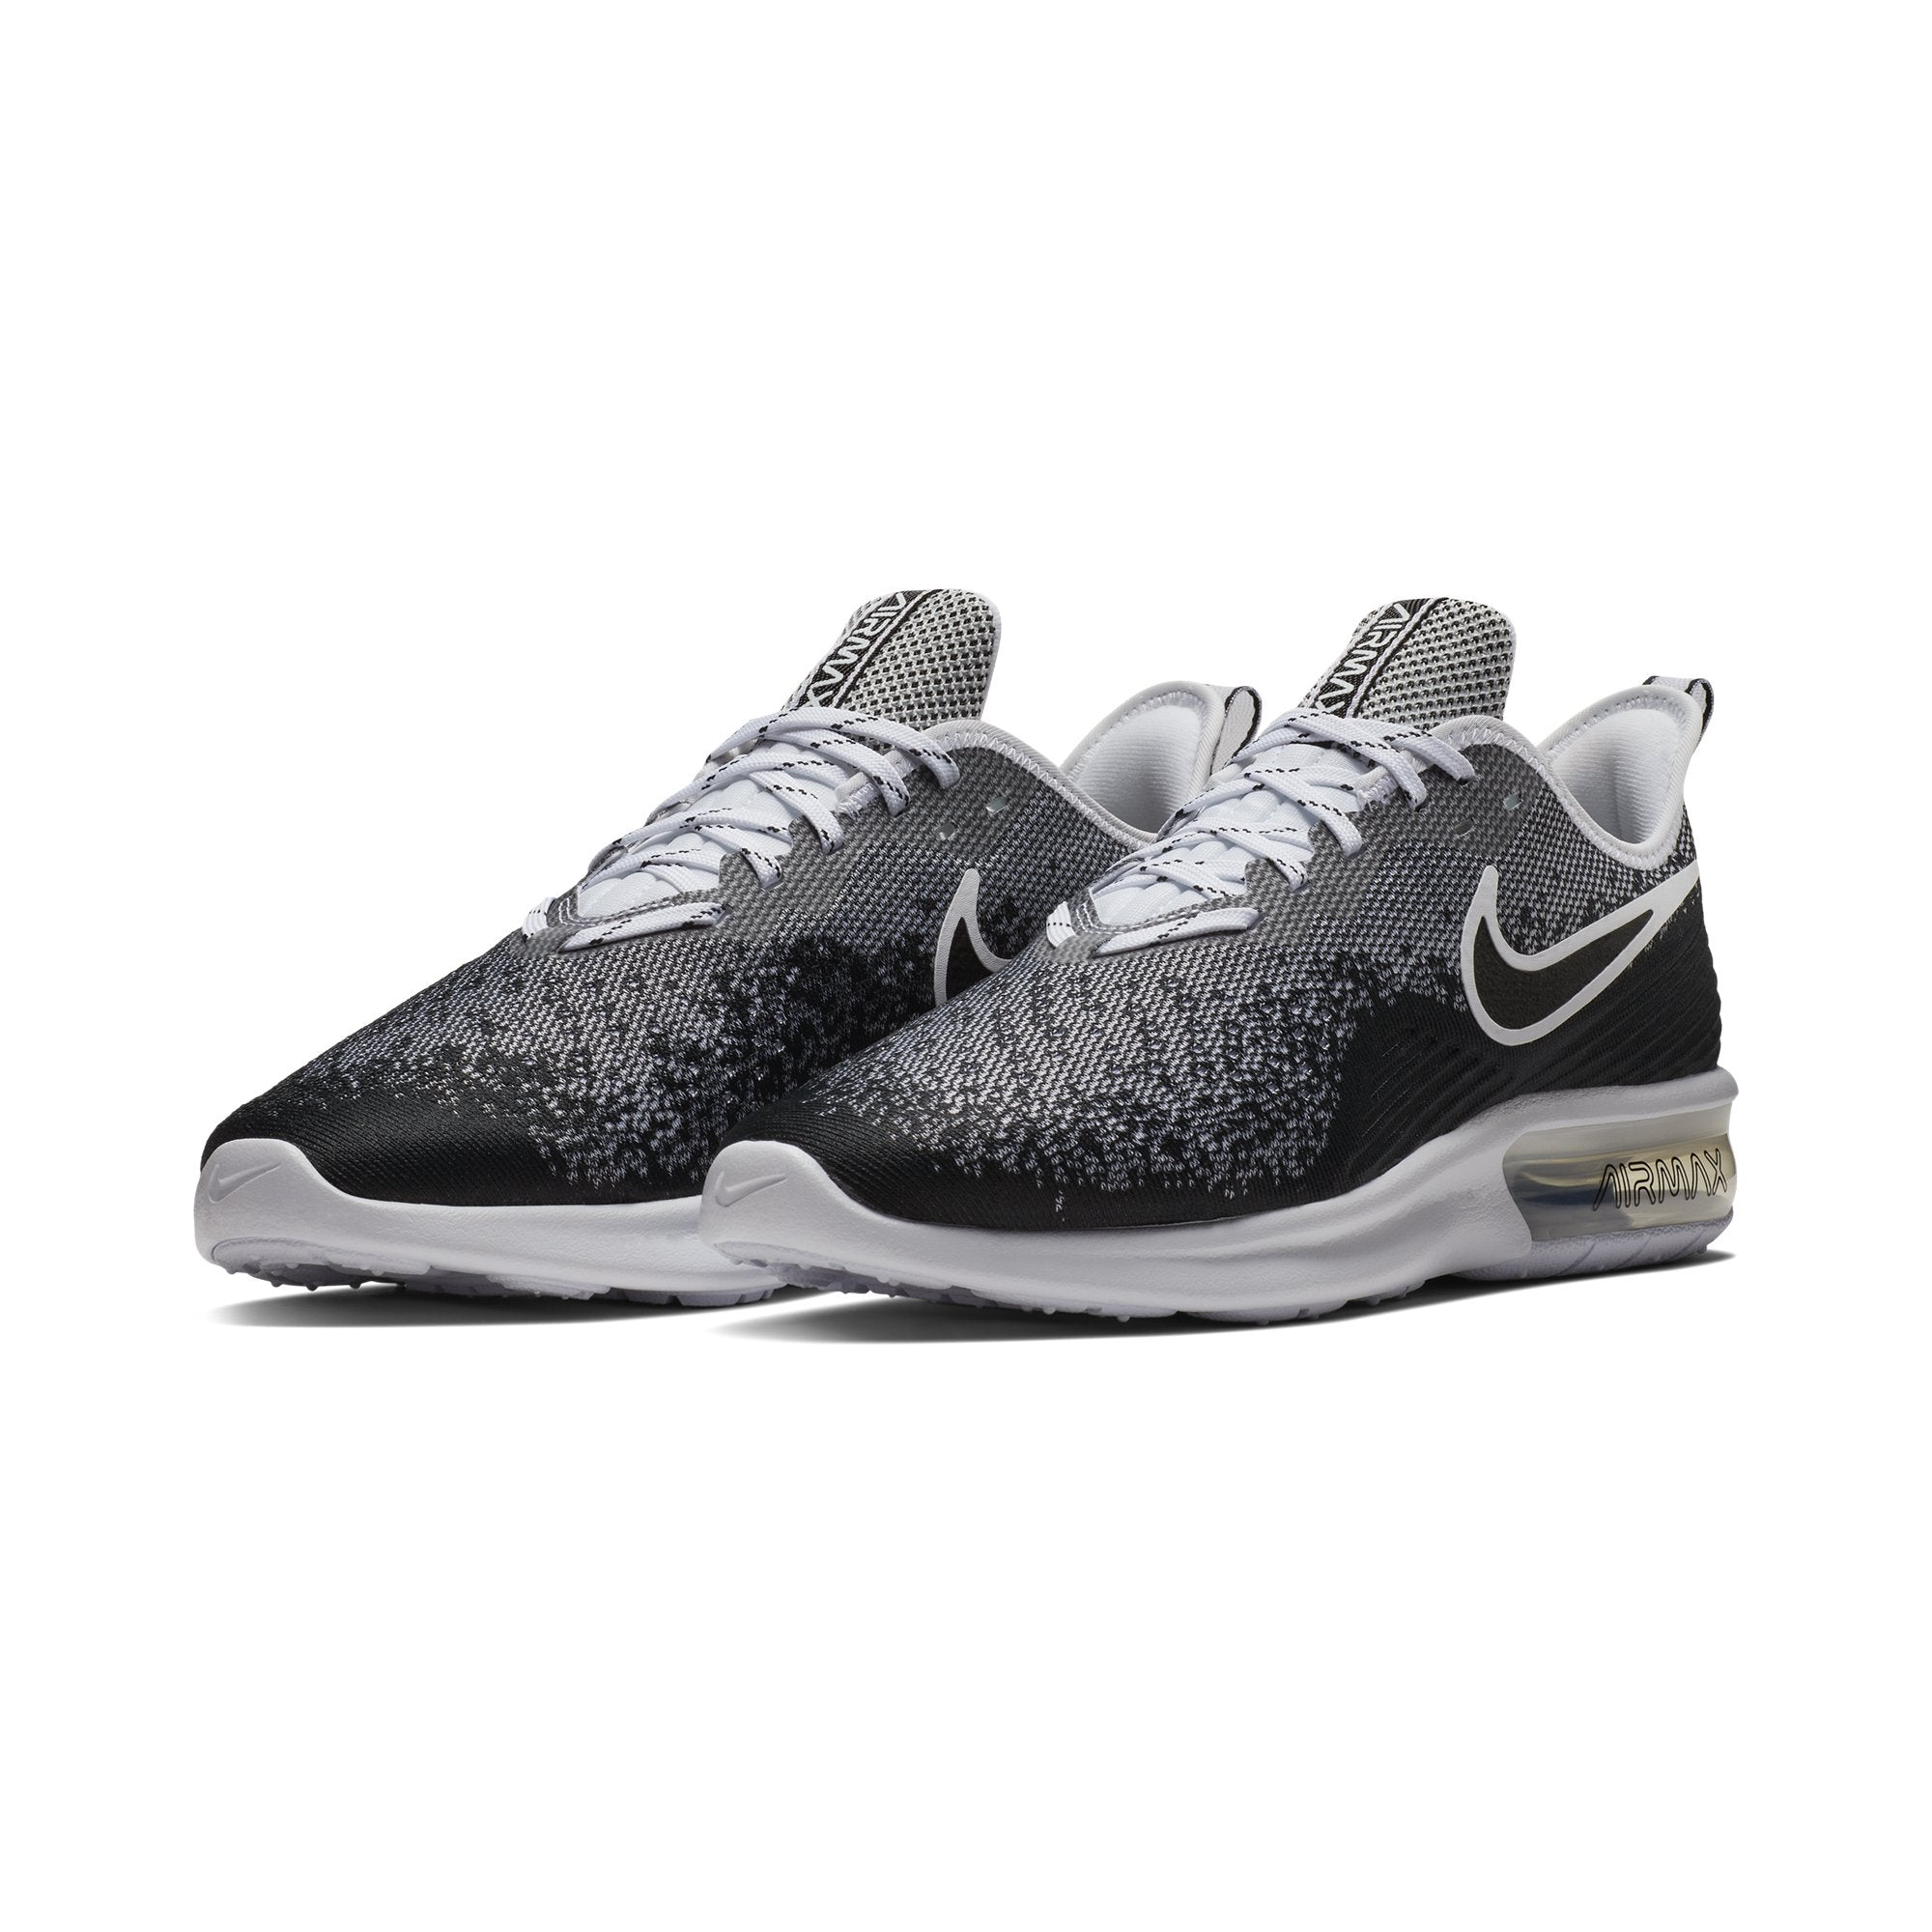 the best attitude 82b17 01c87 Men s Air Max Sequent 4 Running Shoes, Black White